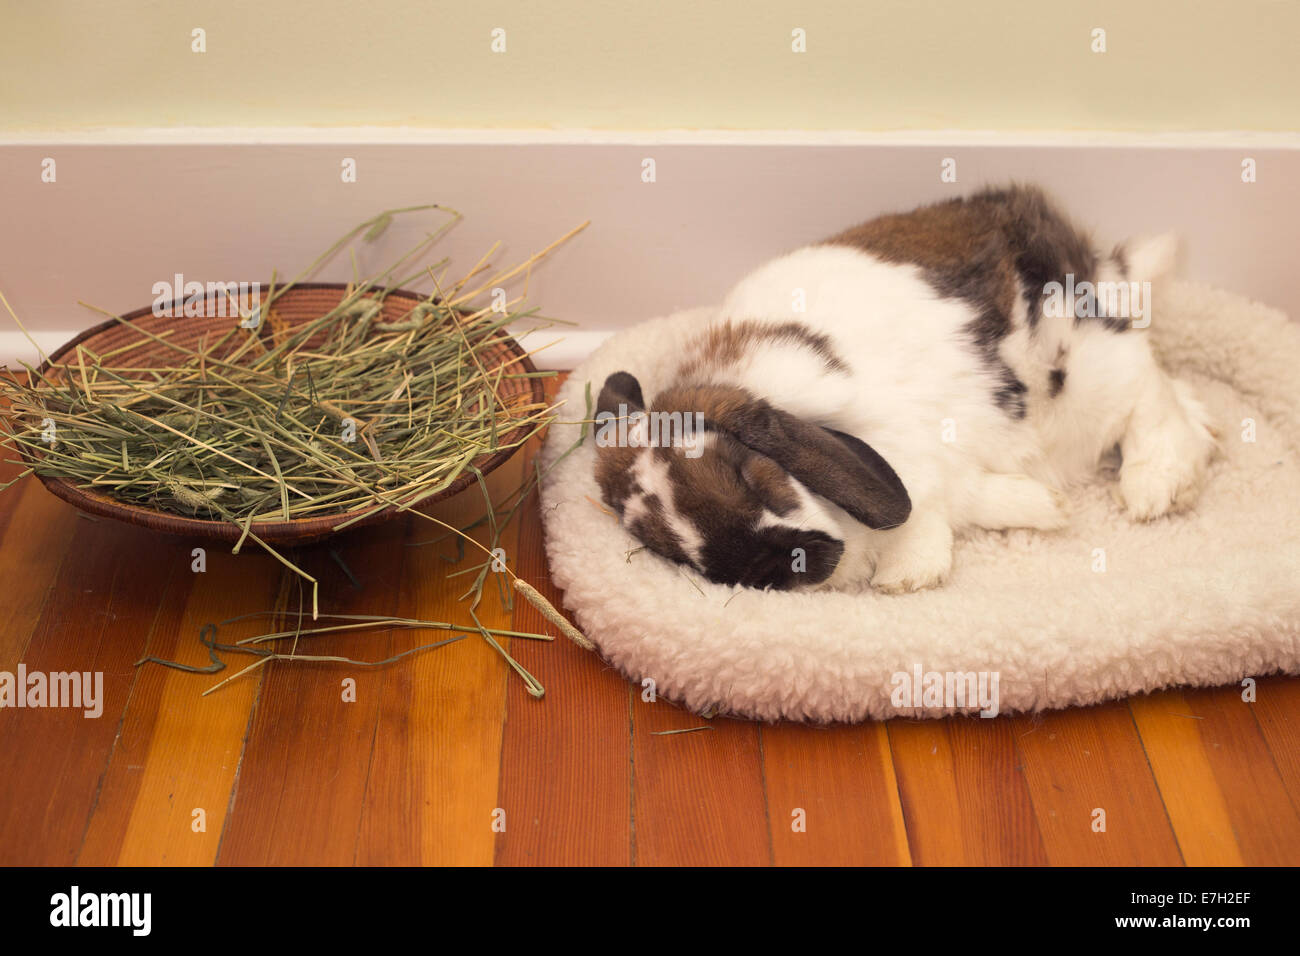 Nine-year old pet Holland Lop dwarf rabbit sleeping on fleece bed beside basket of timothy hay inside house - Stock Image